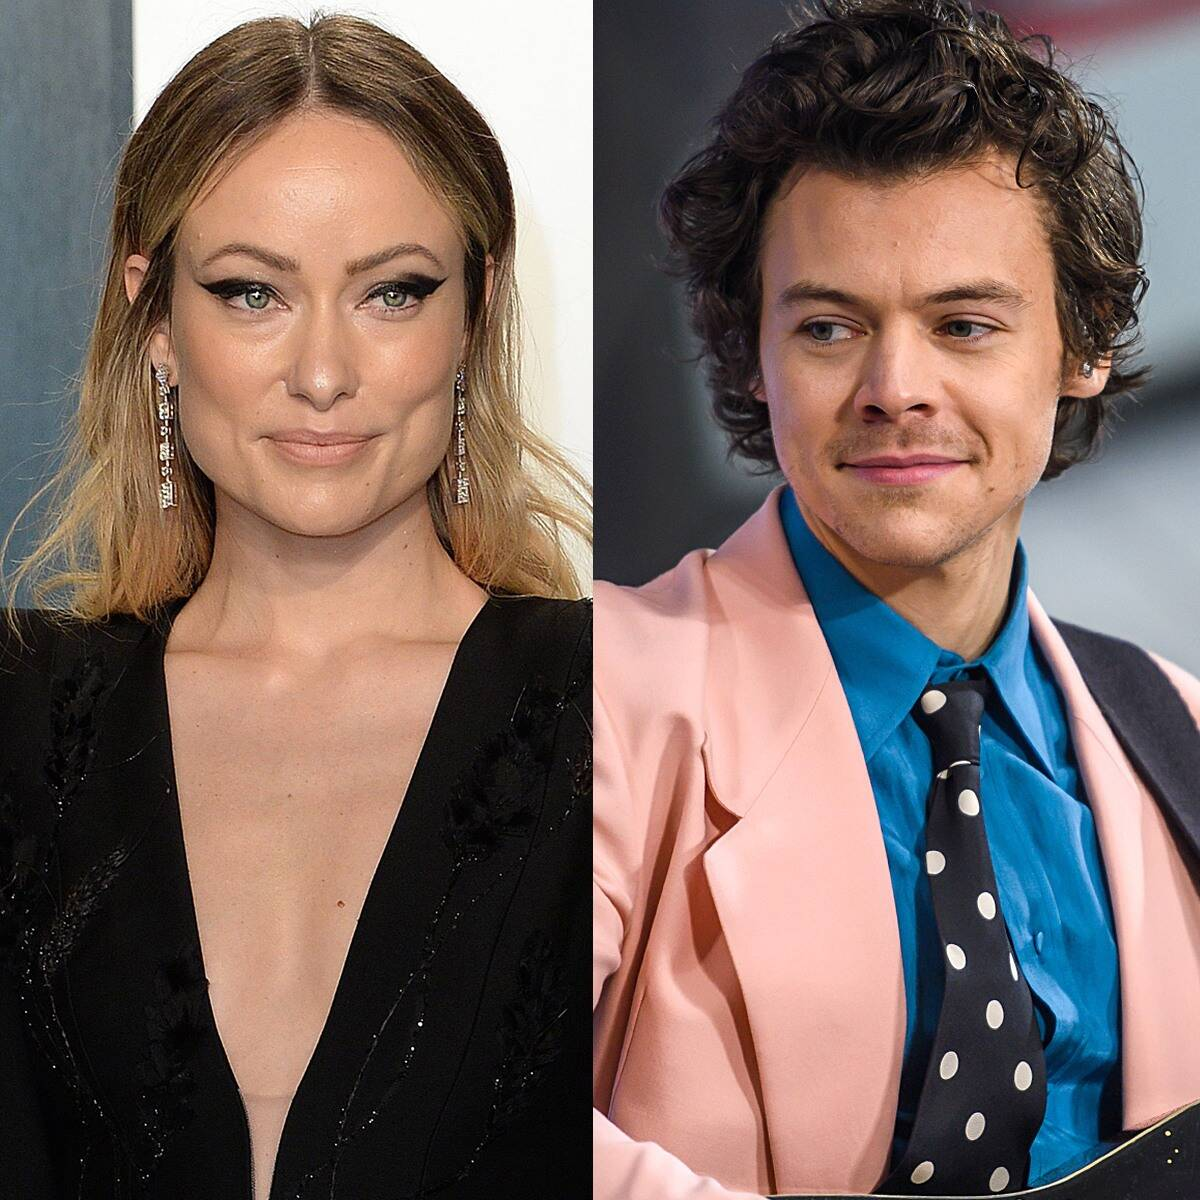 olivia-wilde-is-reportedly-already-falling-in-love-with-harry-styles-details